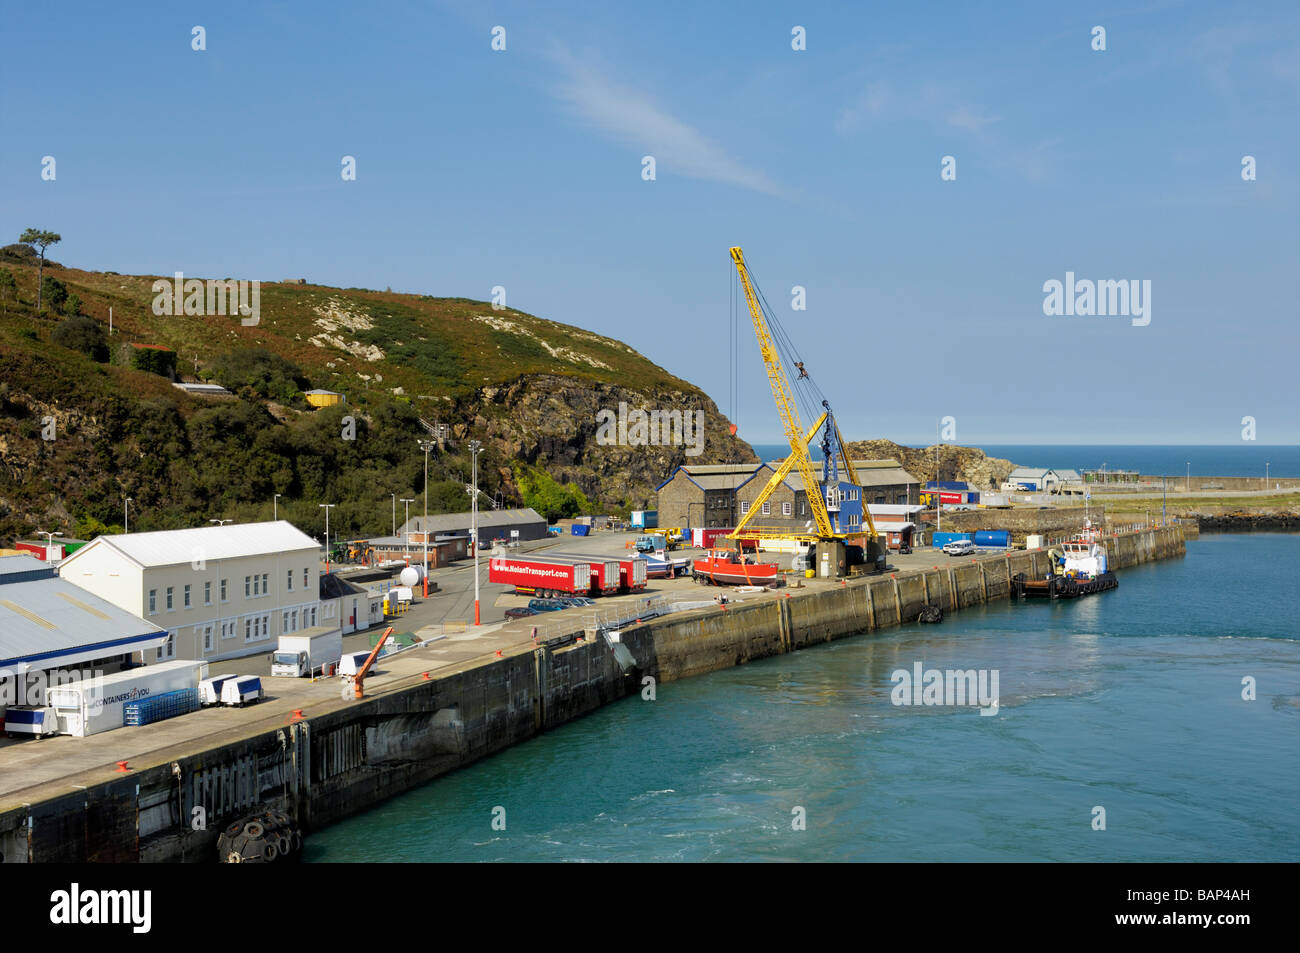 Fishguard ferry port - Stock Image